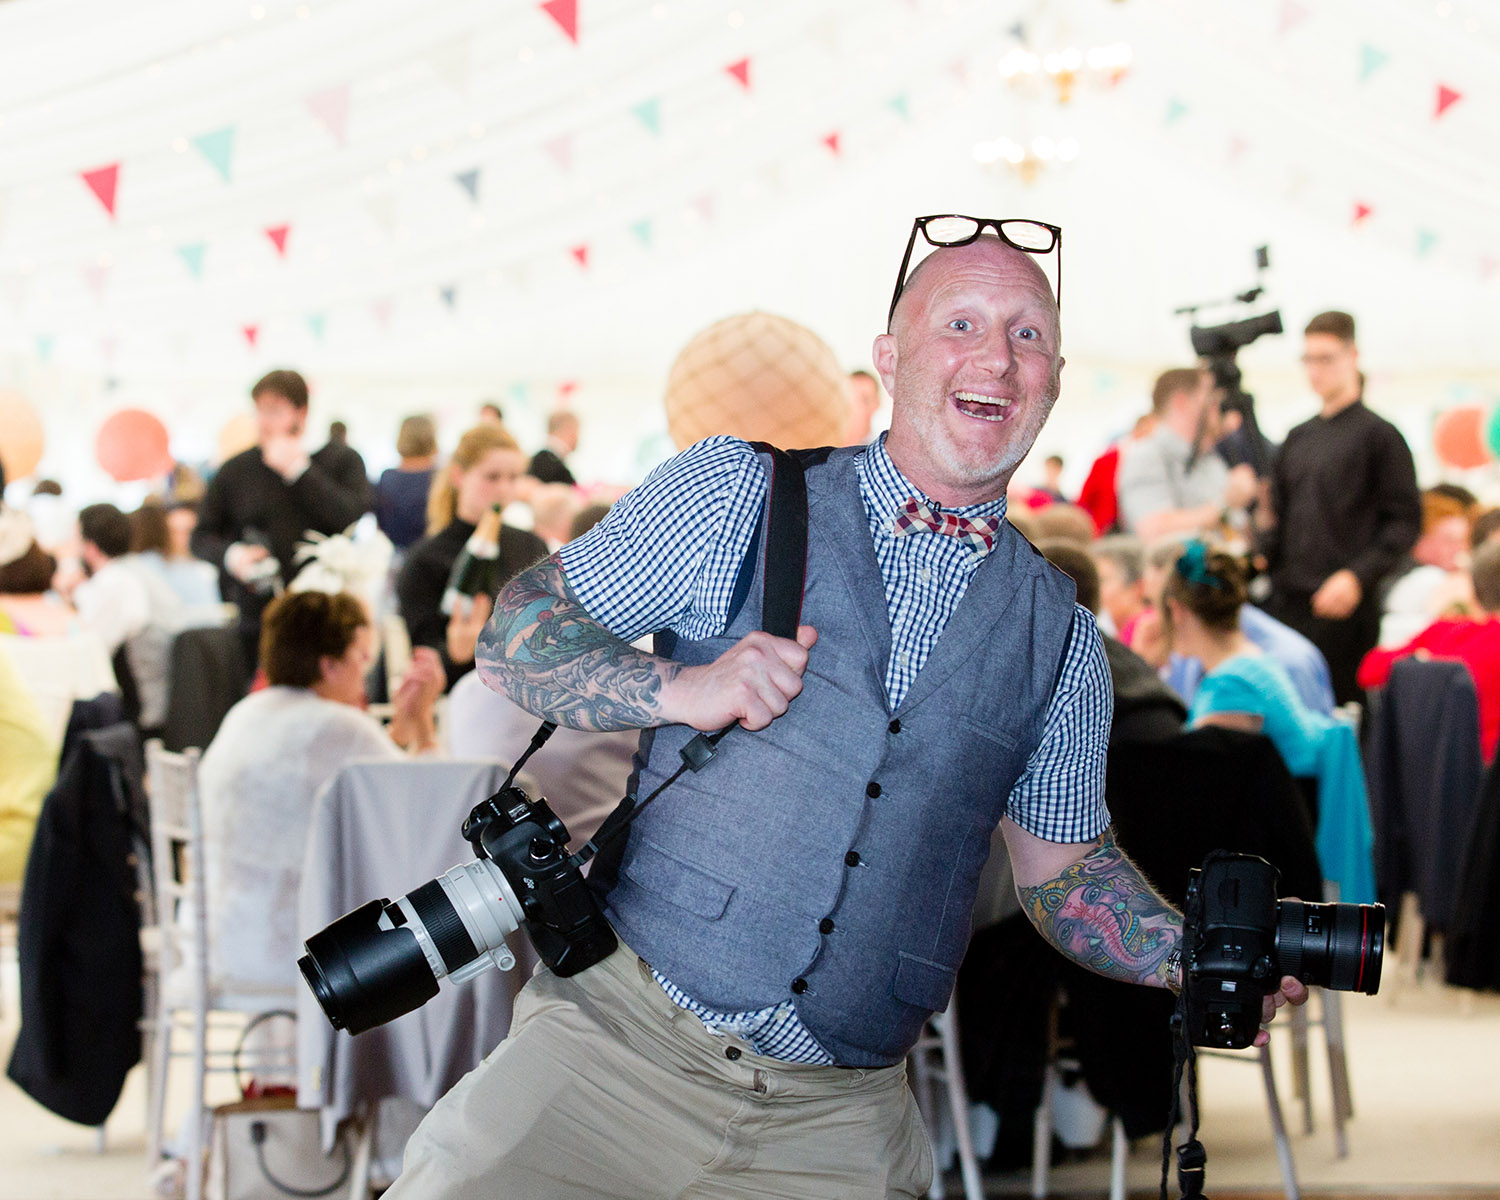 Photo of Chris Scott with his camera equipment at an event.